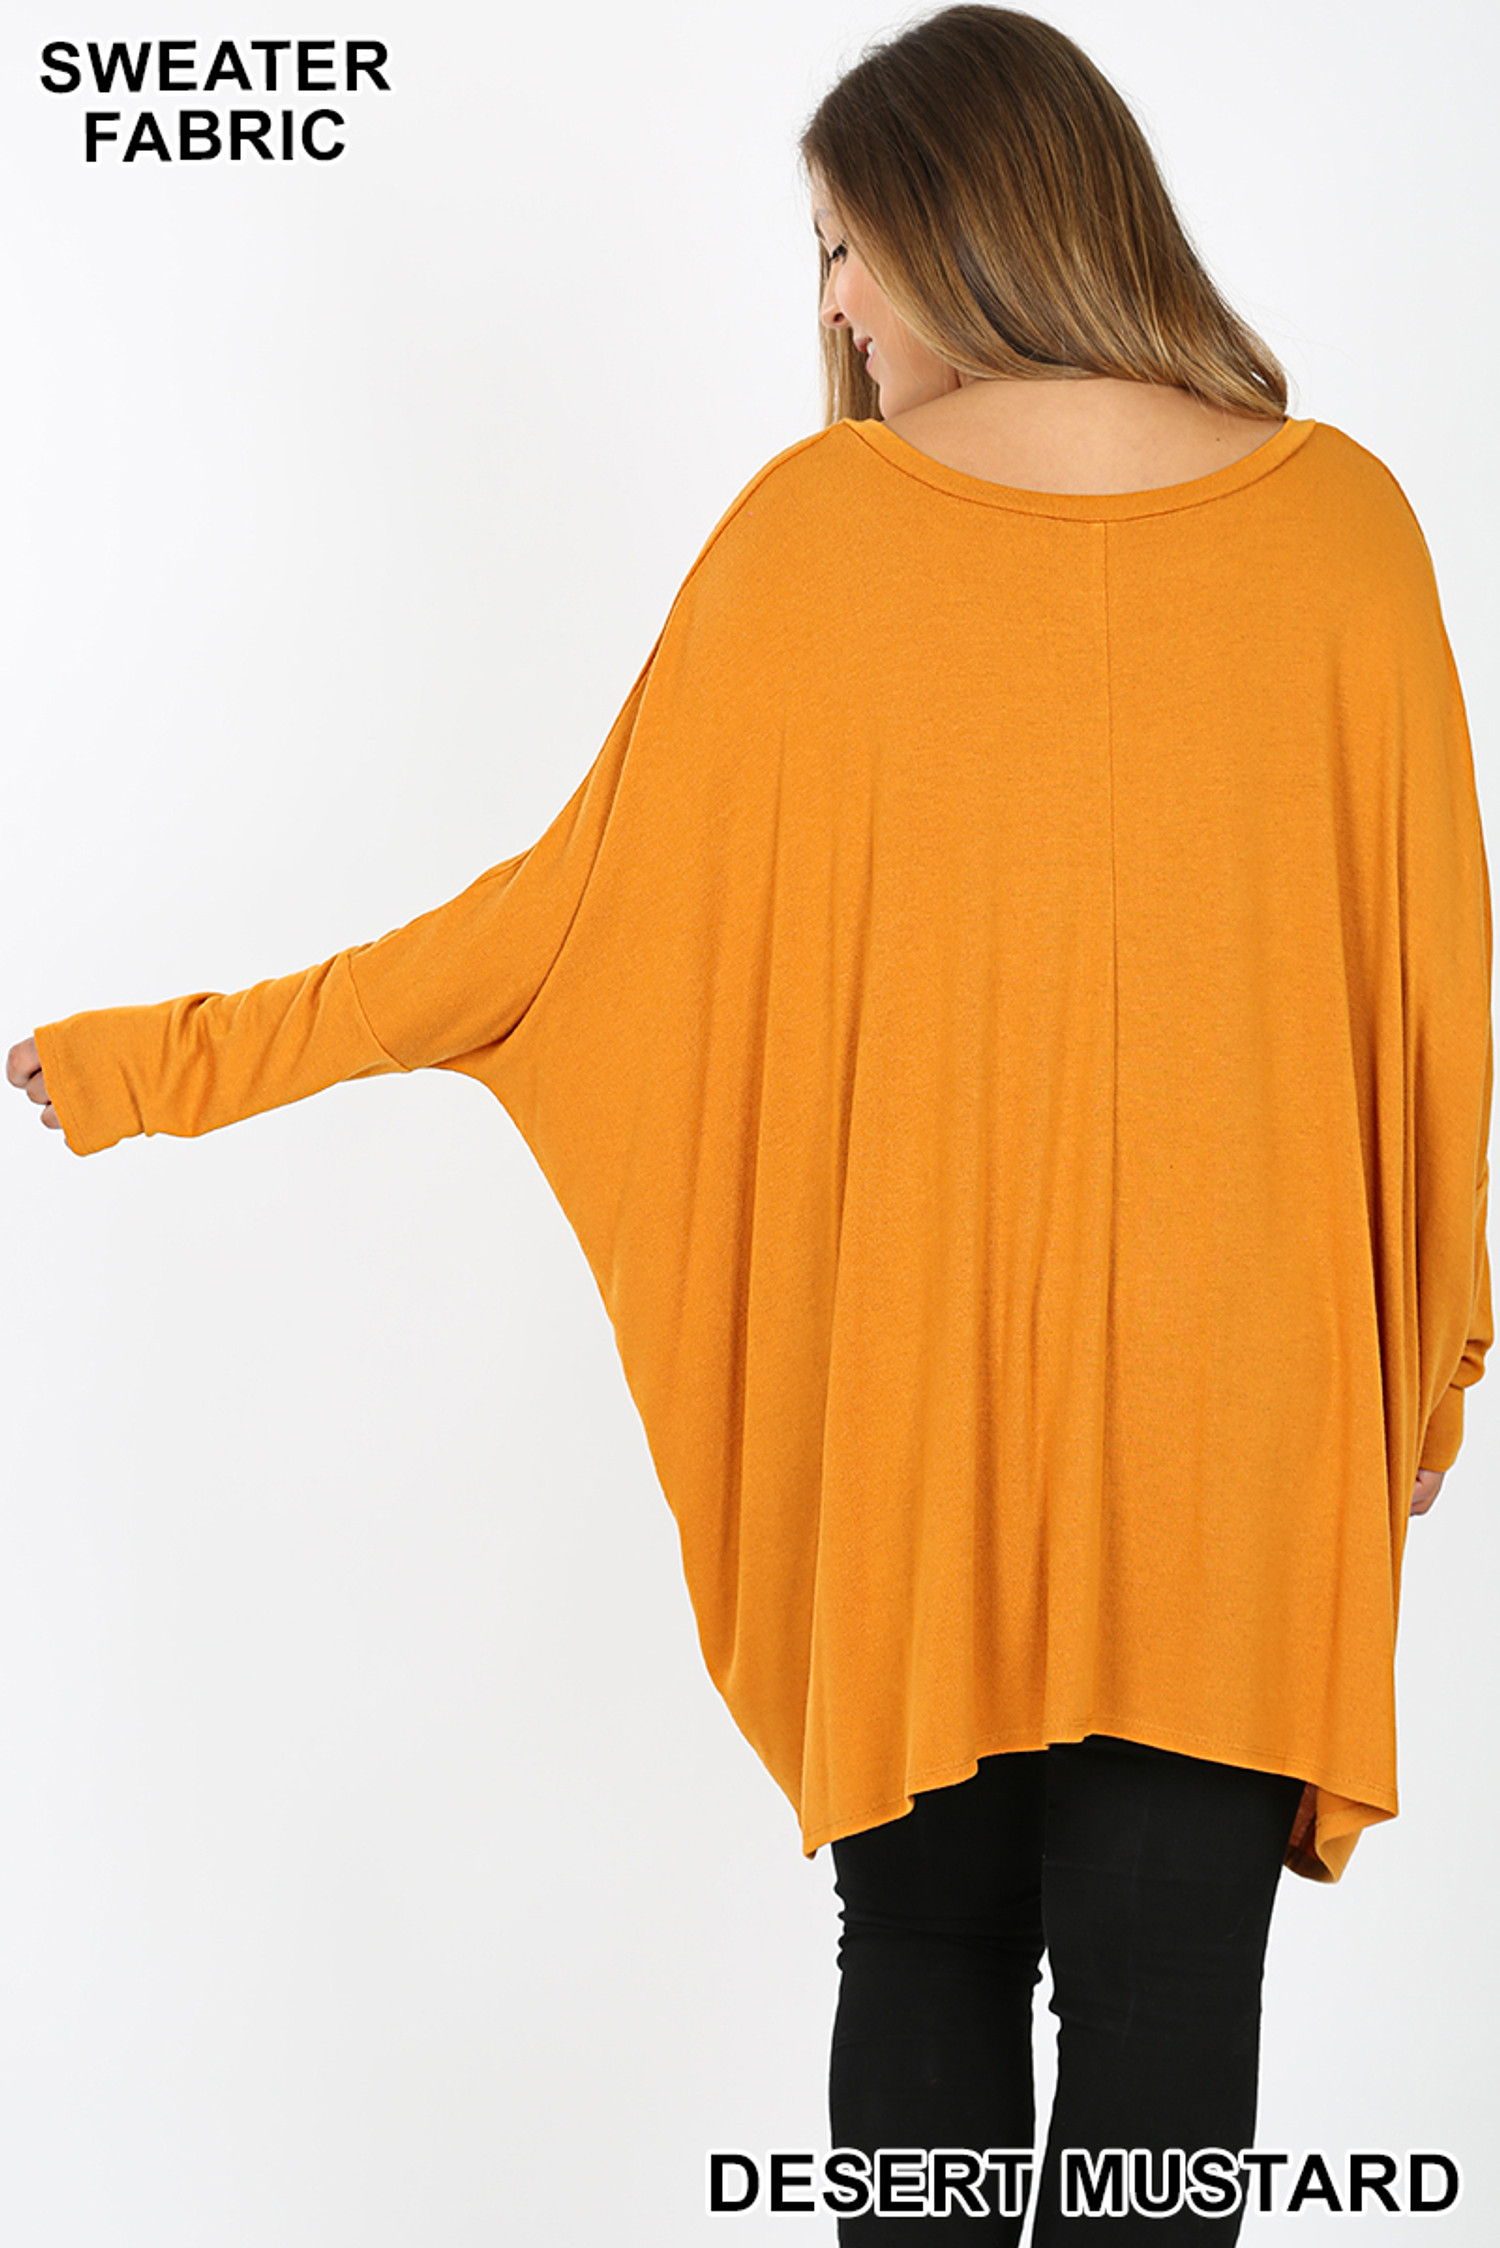 Back view image of Desert Mustard Oversized Round Neck Poncho Plus Size Sweater